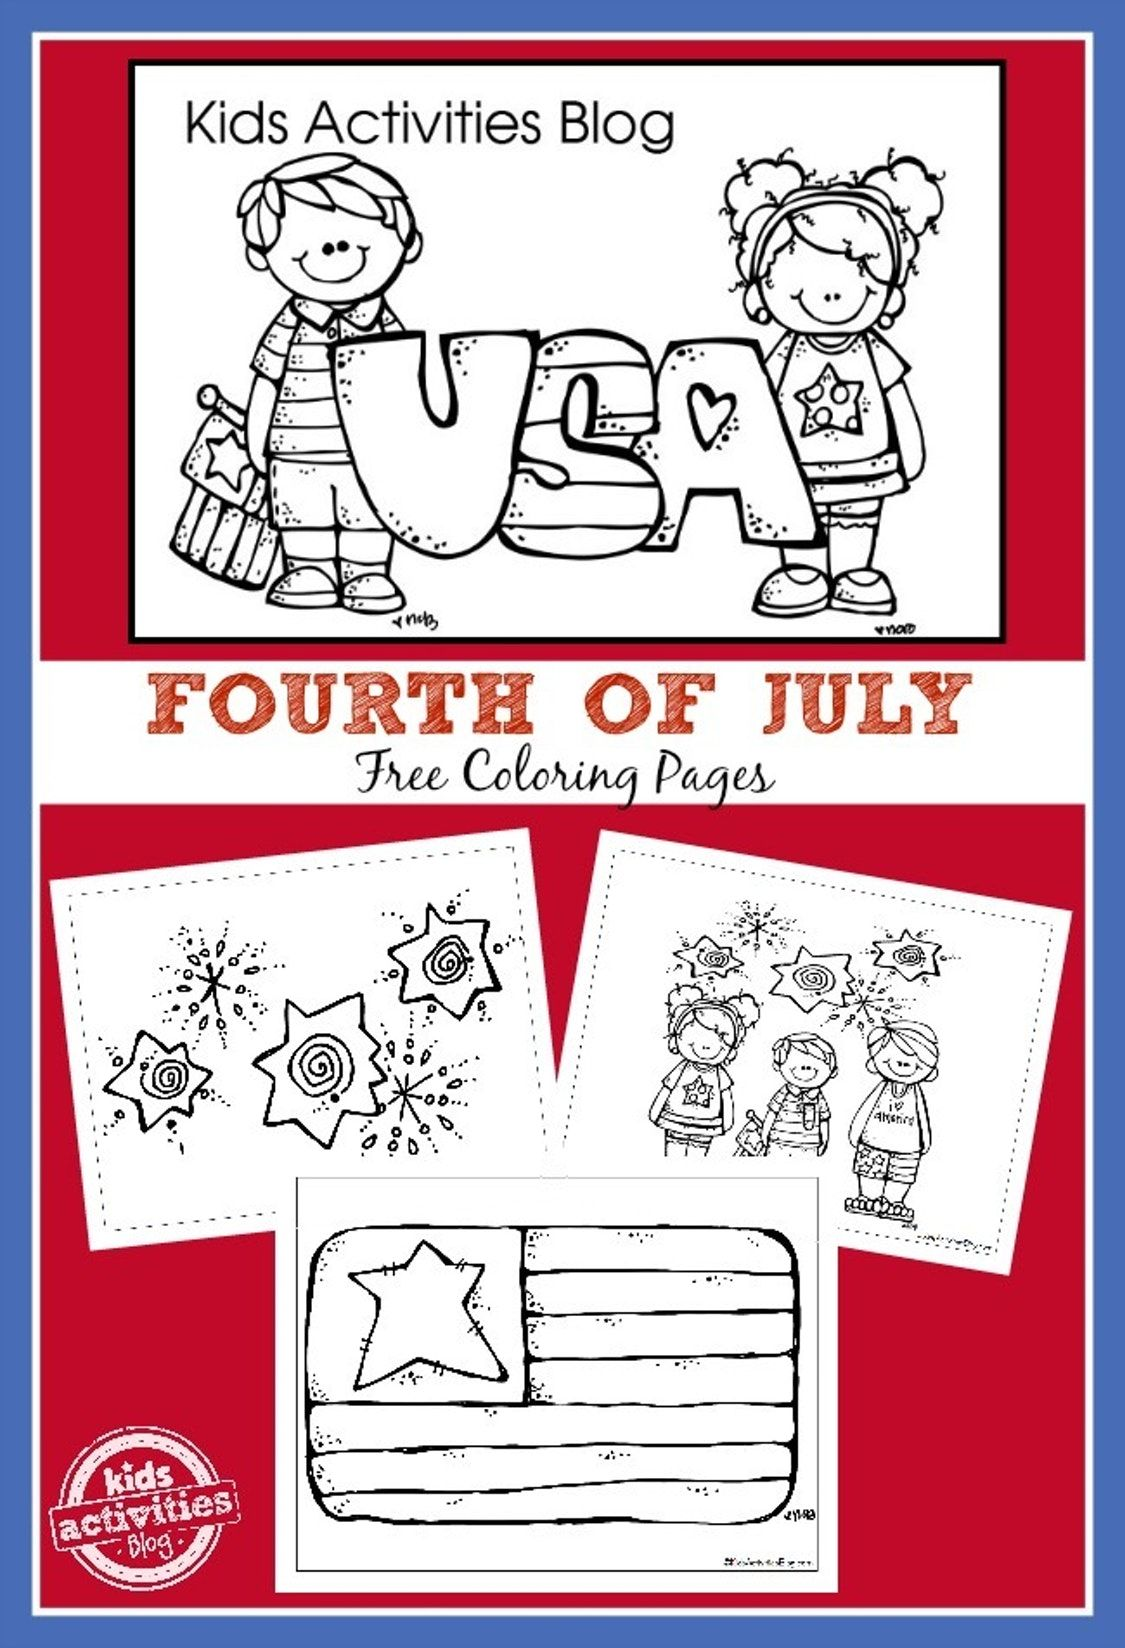 FOURTH OF JULY COLORING PAGES - Kids Activities | Preschool ...